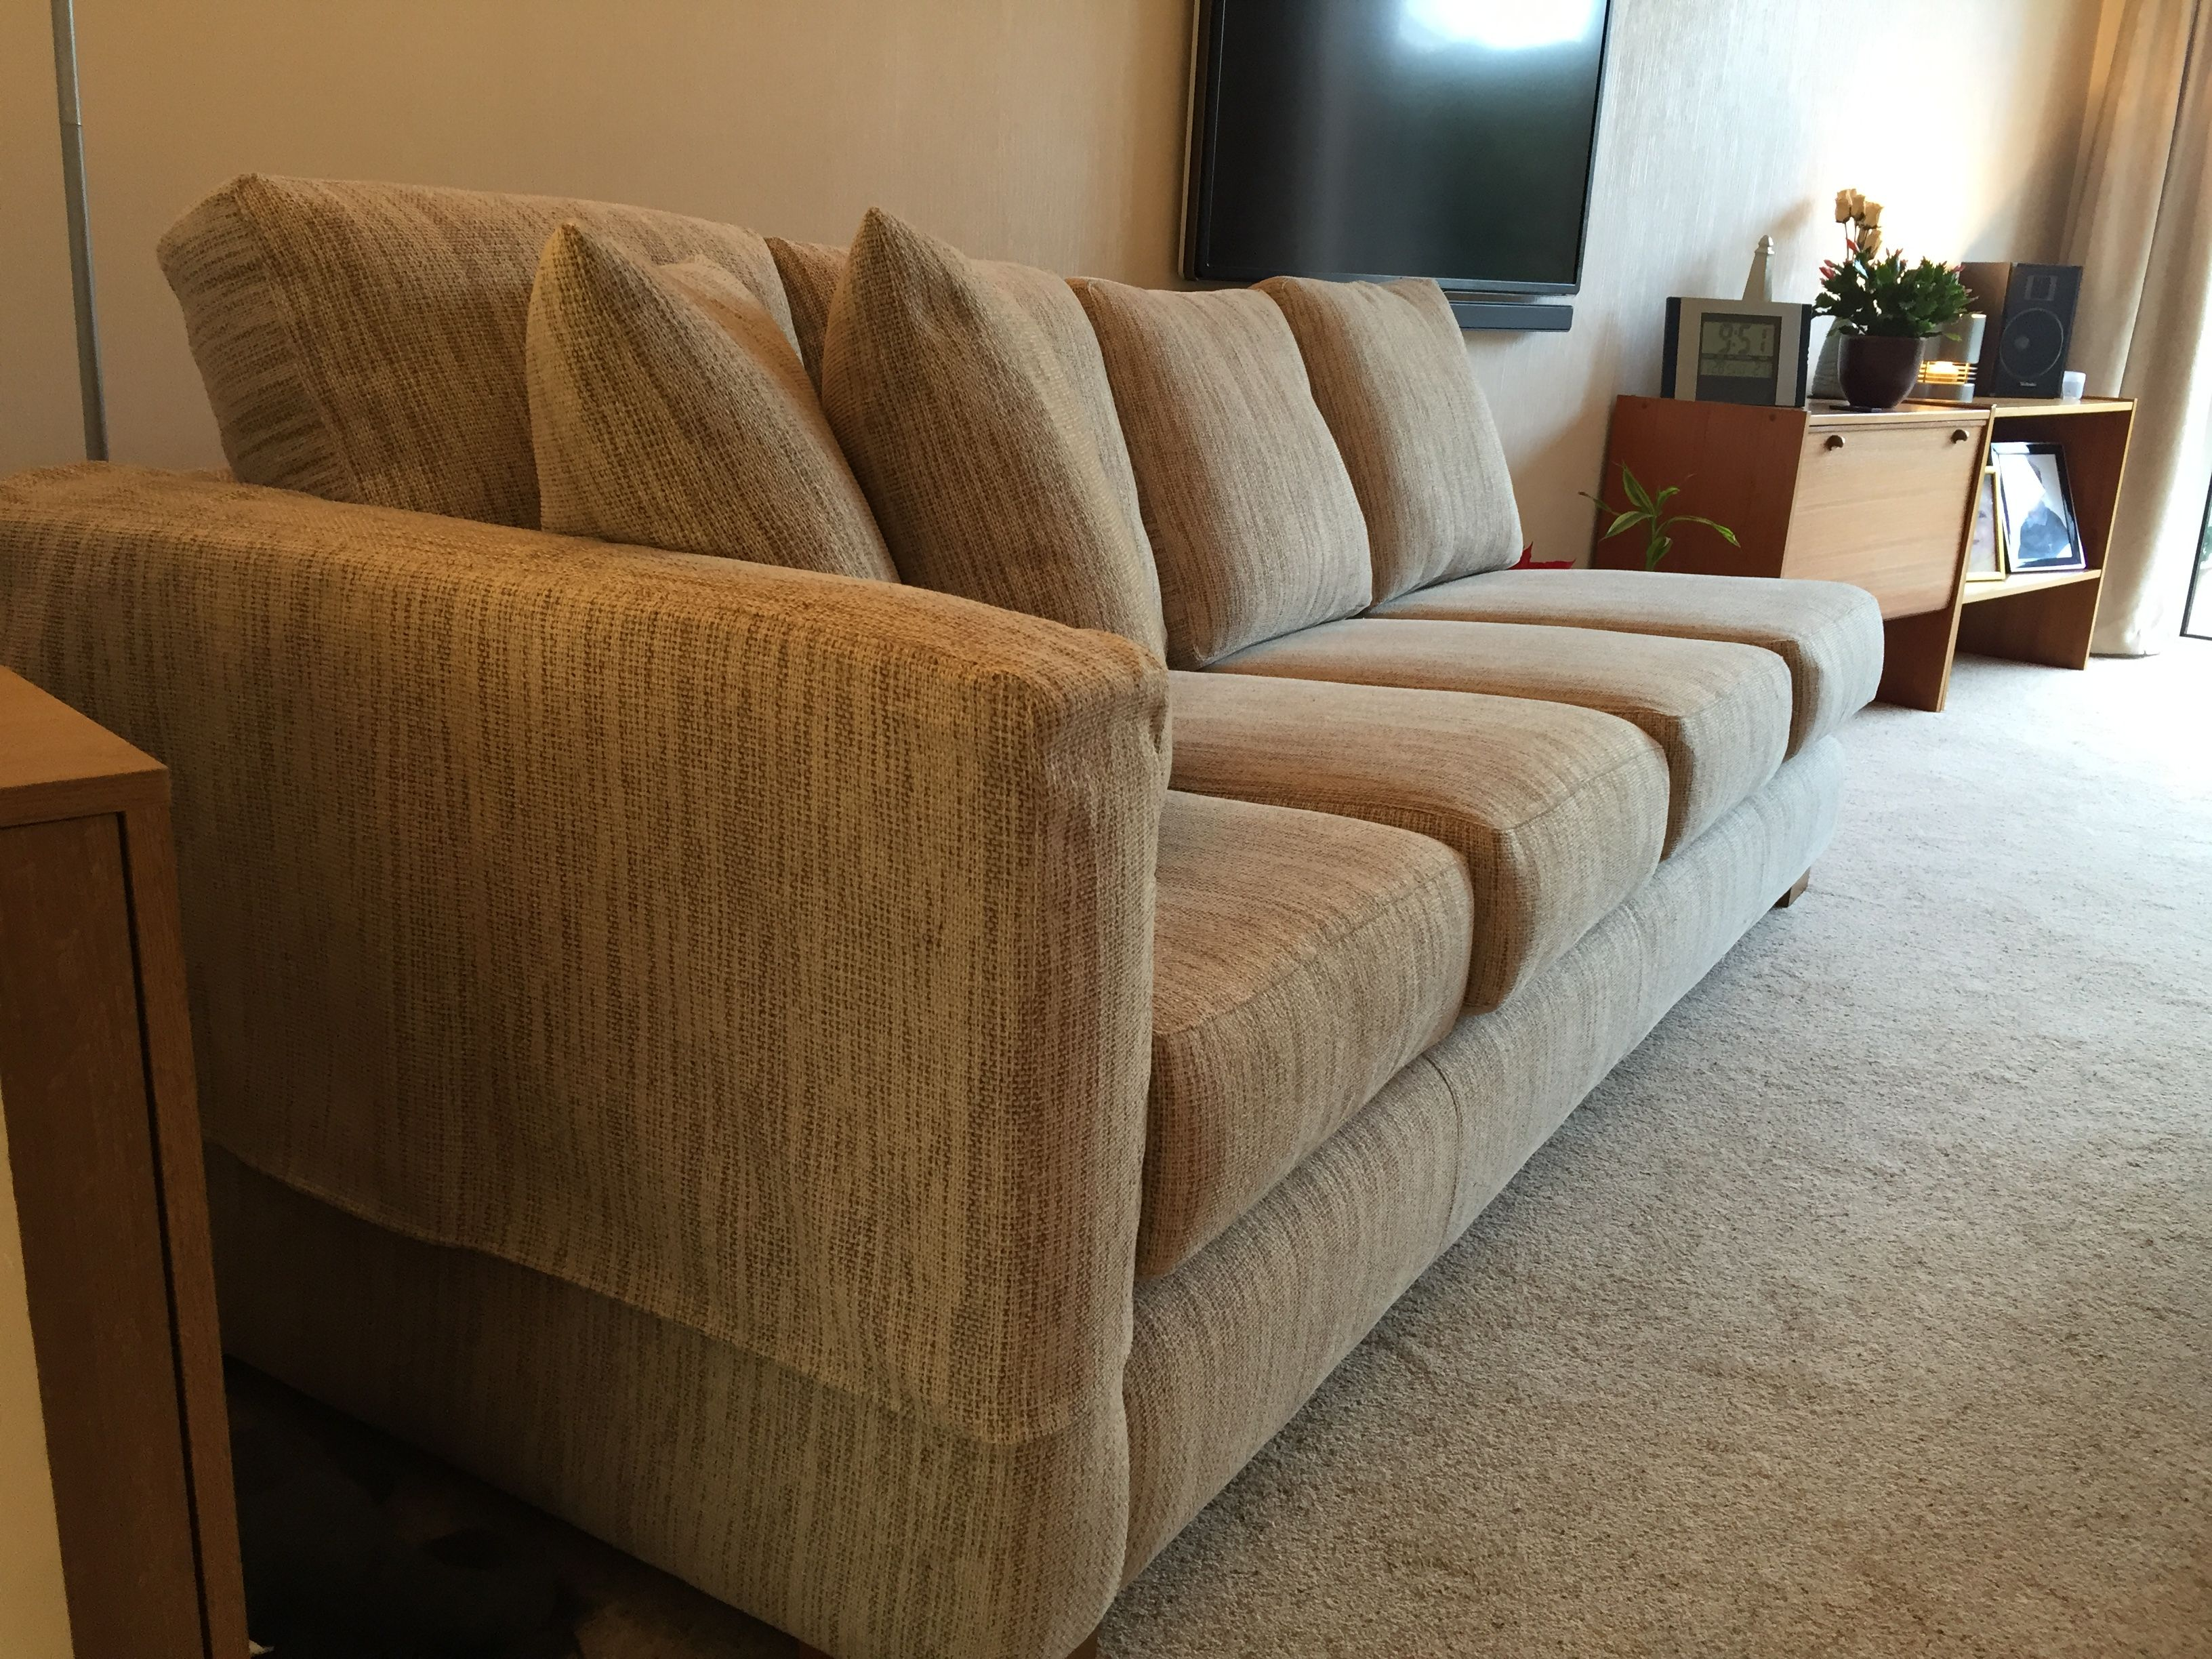 Bespoke one arm Mapperley sofa 212 cm x 85 cm. The left